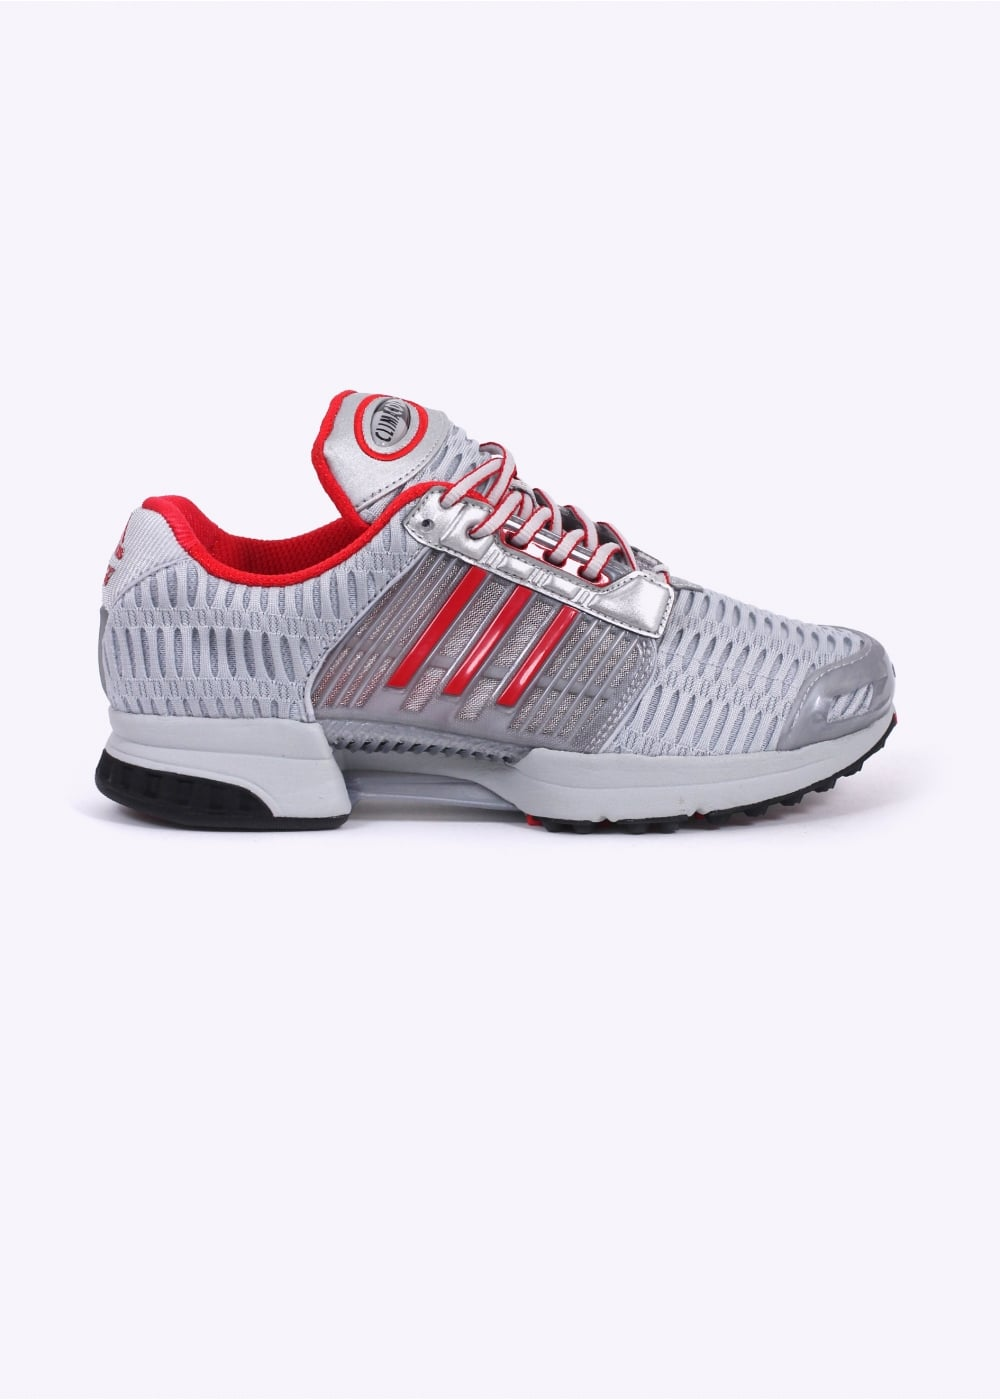 new style 4feb4 293a5 x Coca Cola Climacool 1 - Silver